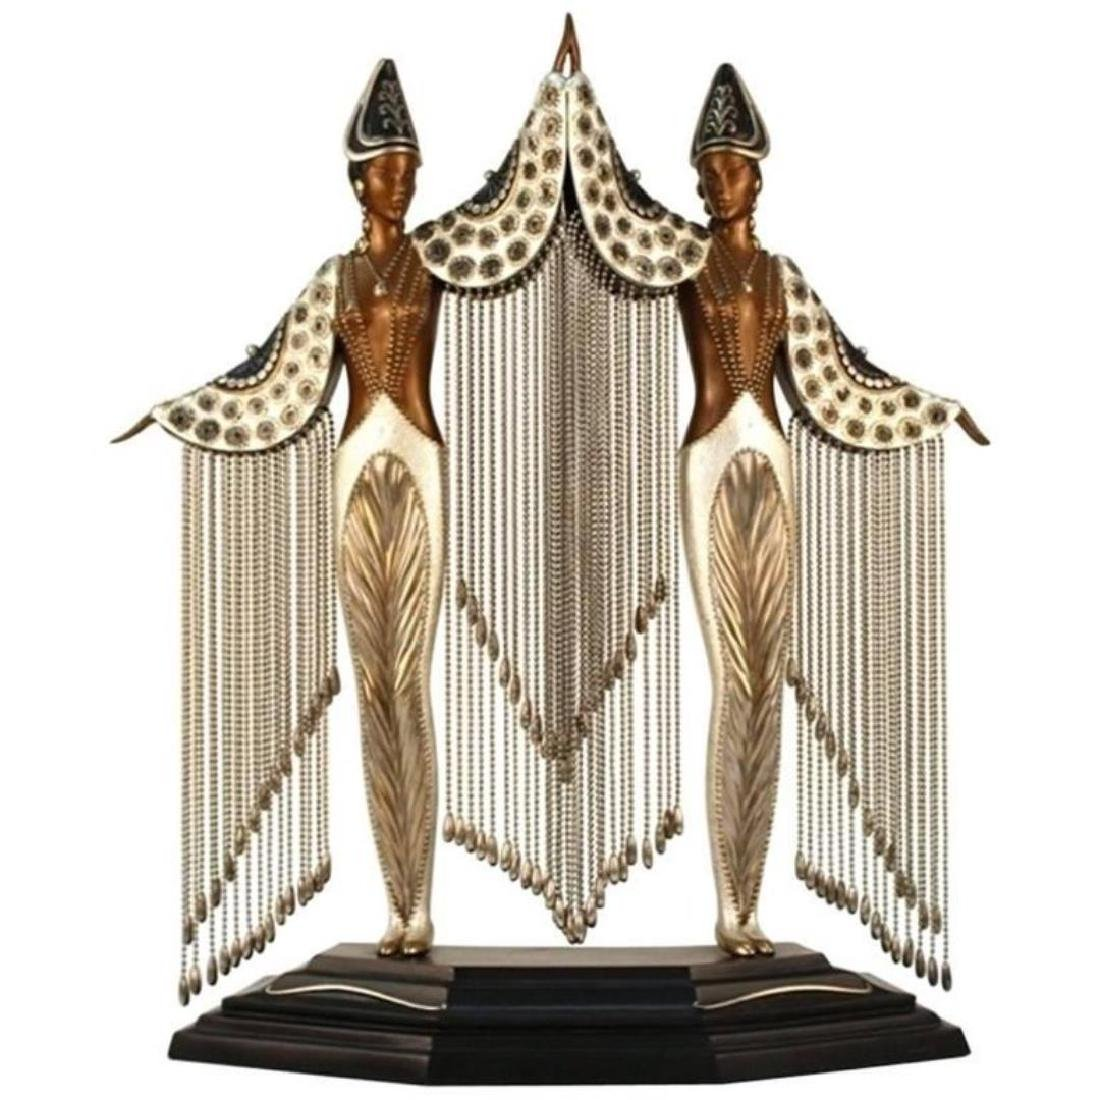 Erte (Russian, 1892-1990)- Bronze Sculpture